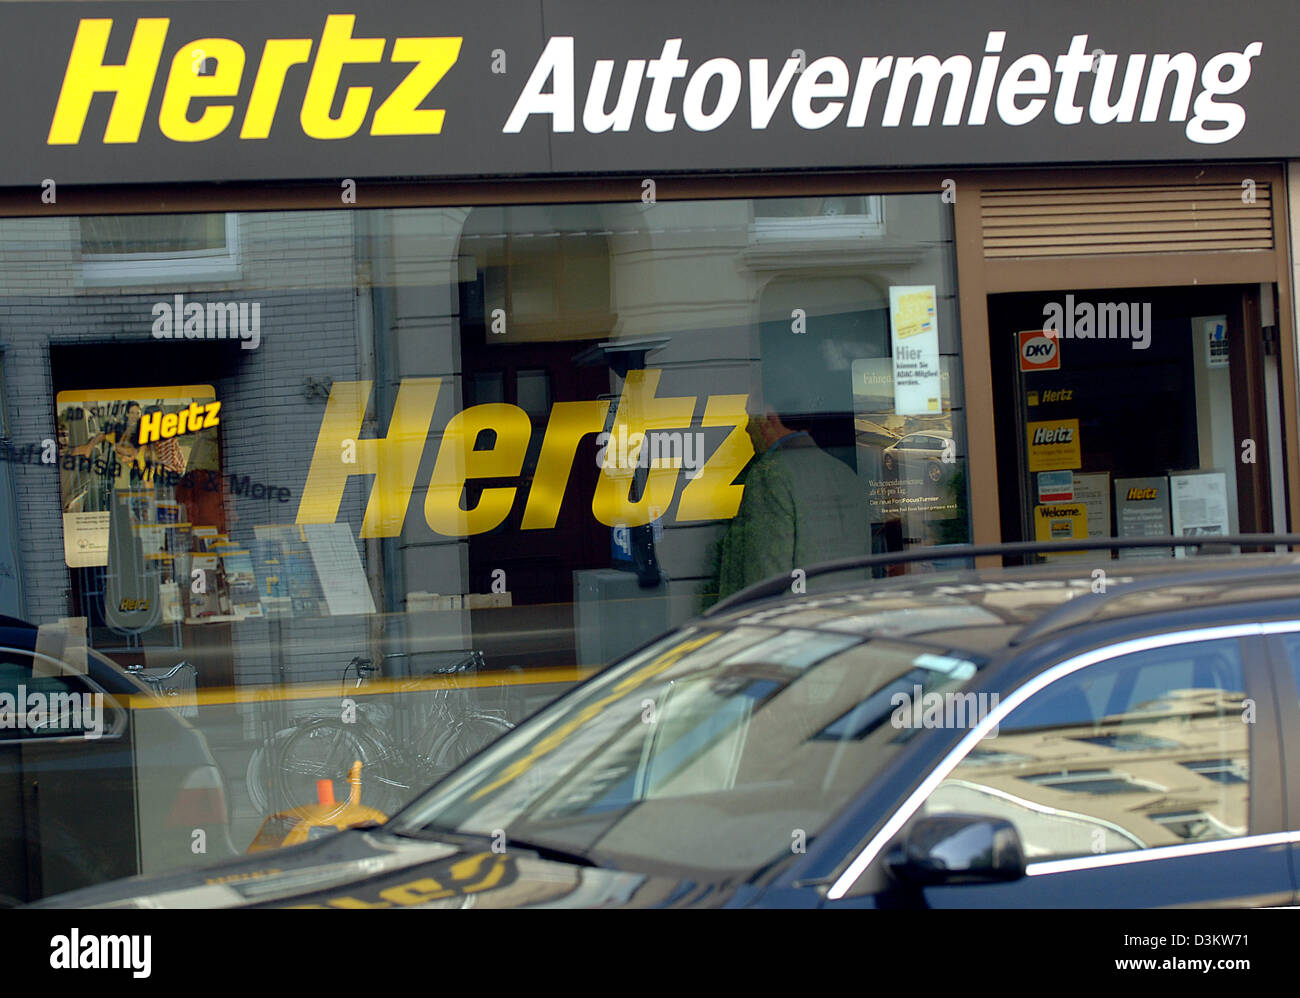 087ee6b957 (dpa) - A car drives past a branch of car rental agency Hertz in Cologne